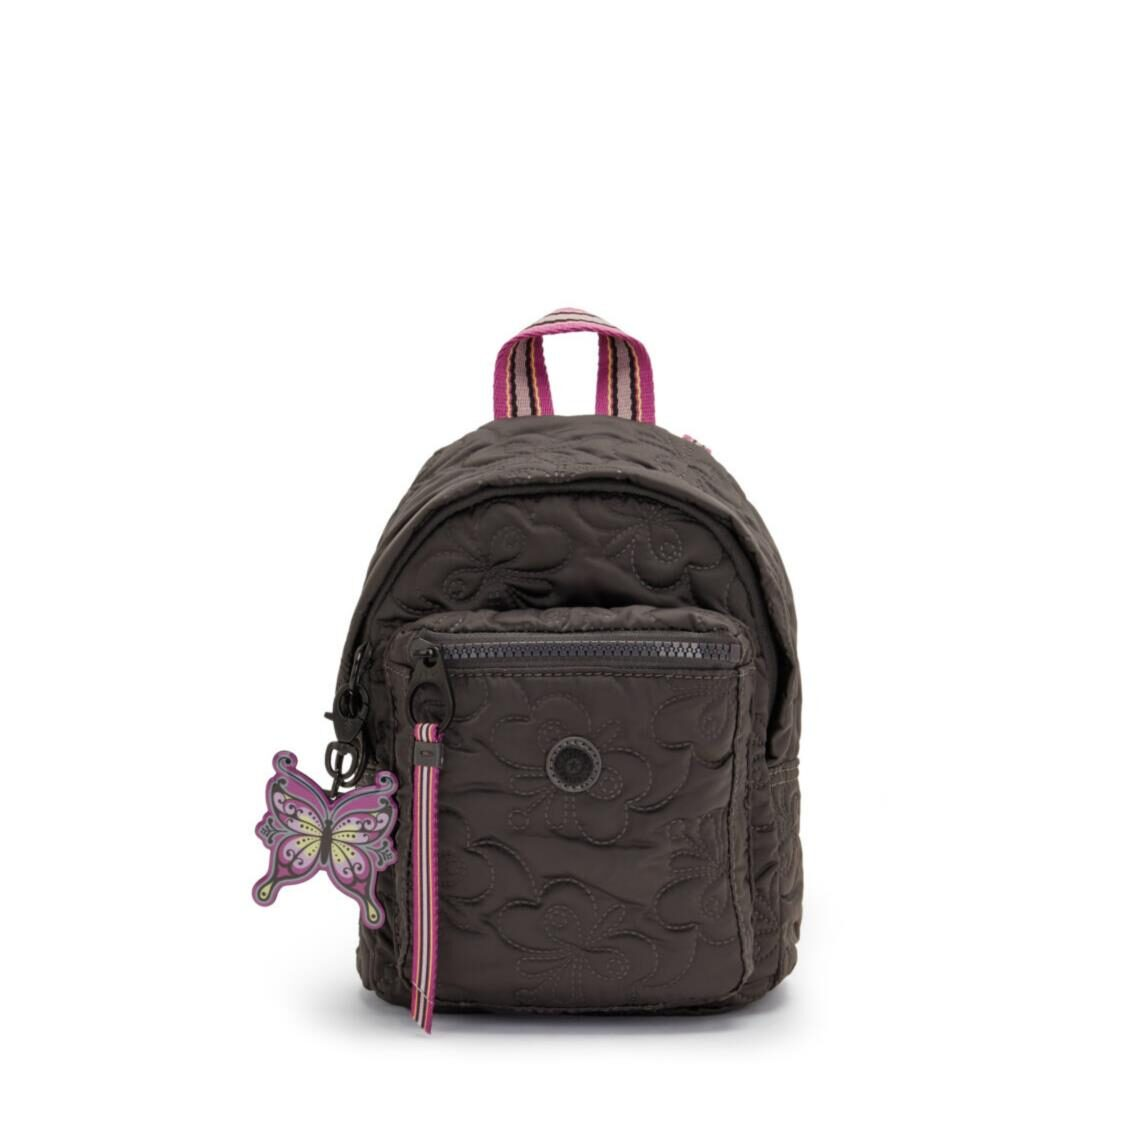 Kipling Delia Compact Butterfly Qlt 3-in-1 Convertible Bag